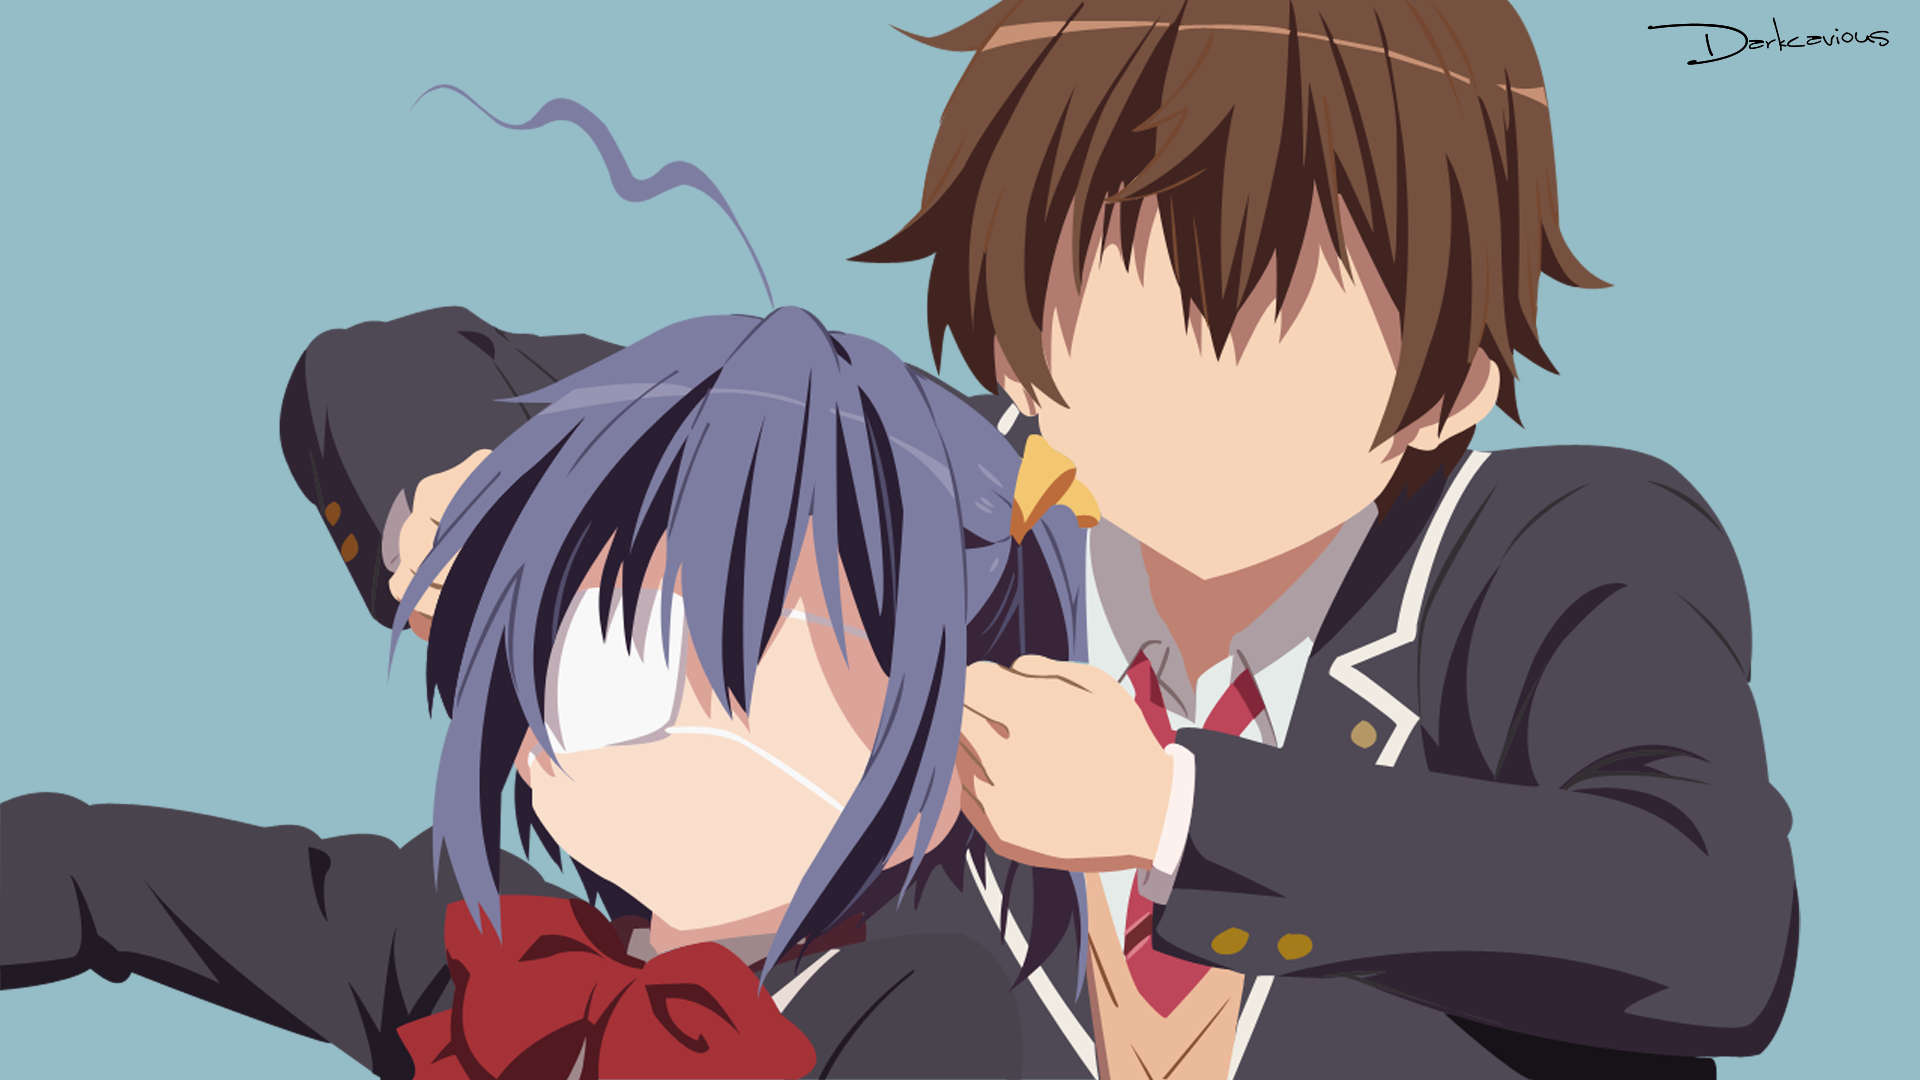 chuunibyou rikka and yuuta wallpapers - photo #29